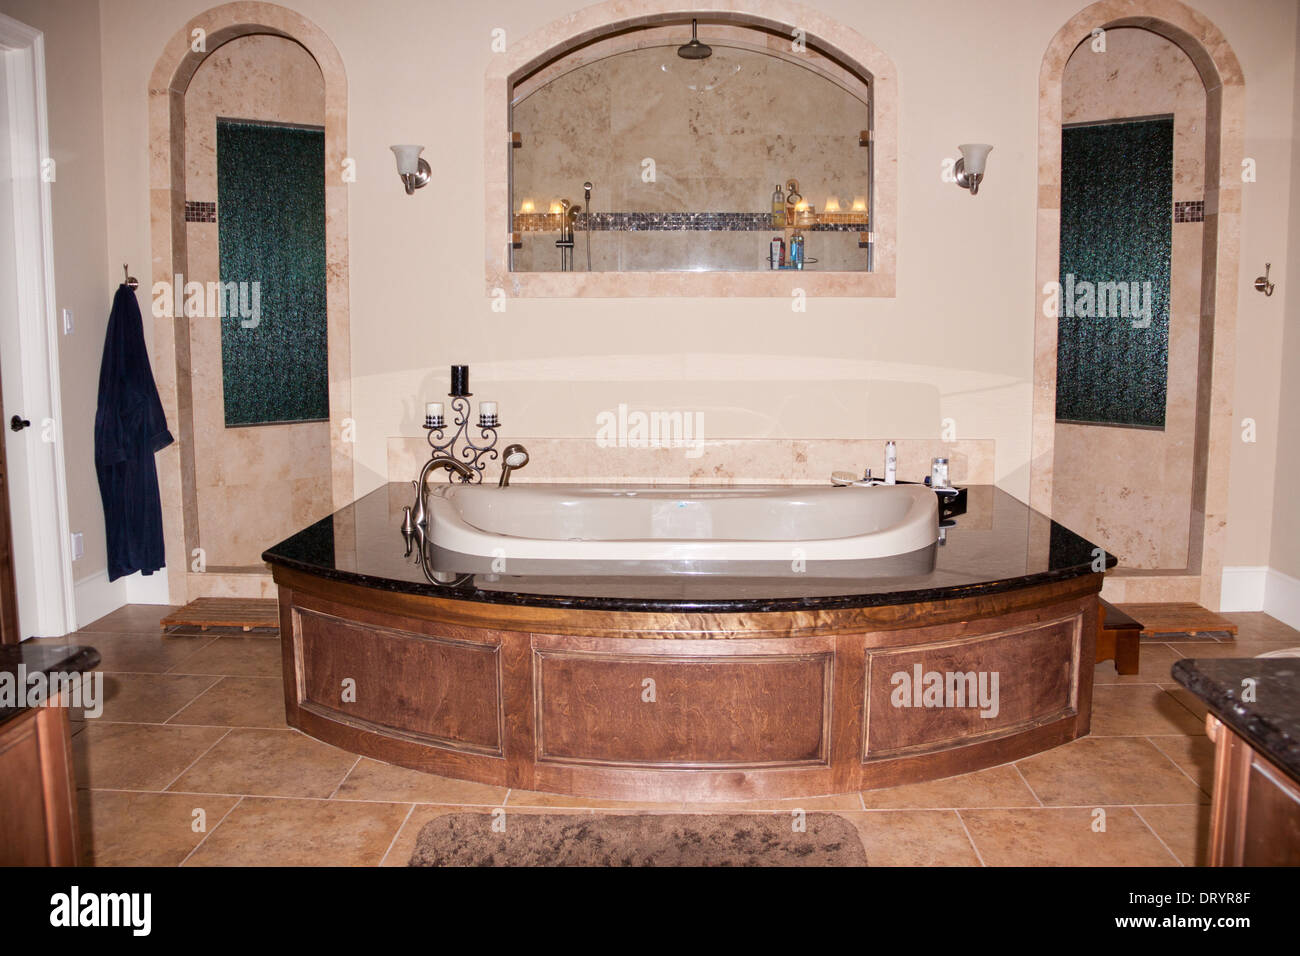 Jacuzzi Bathtub In Front Of Walk Through Shower In Luxury Custom Home